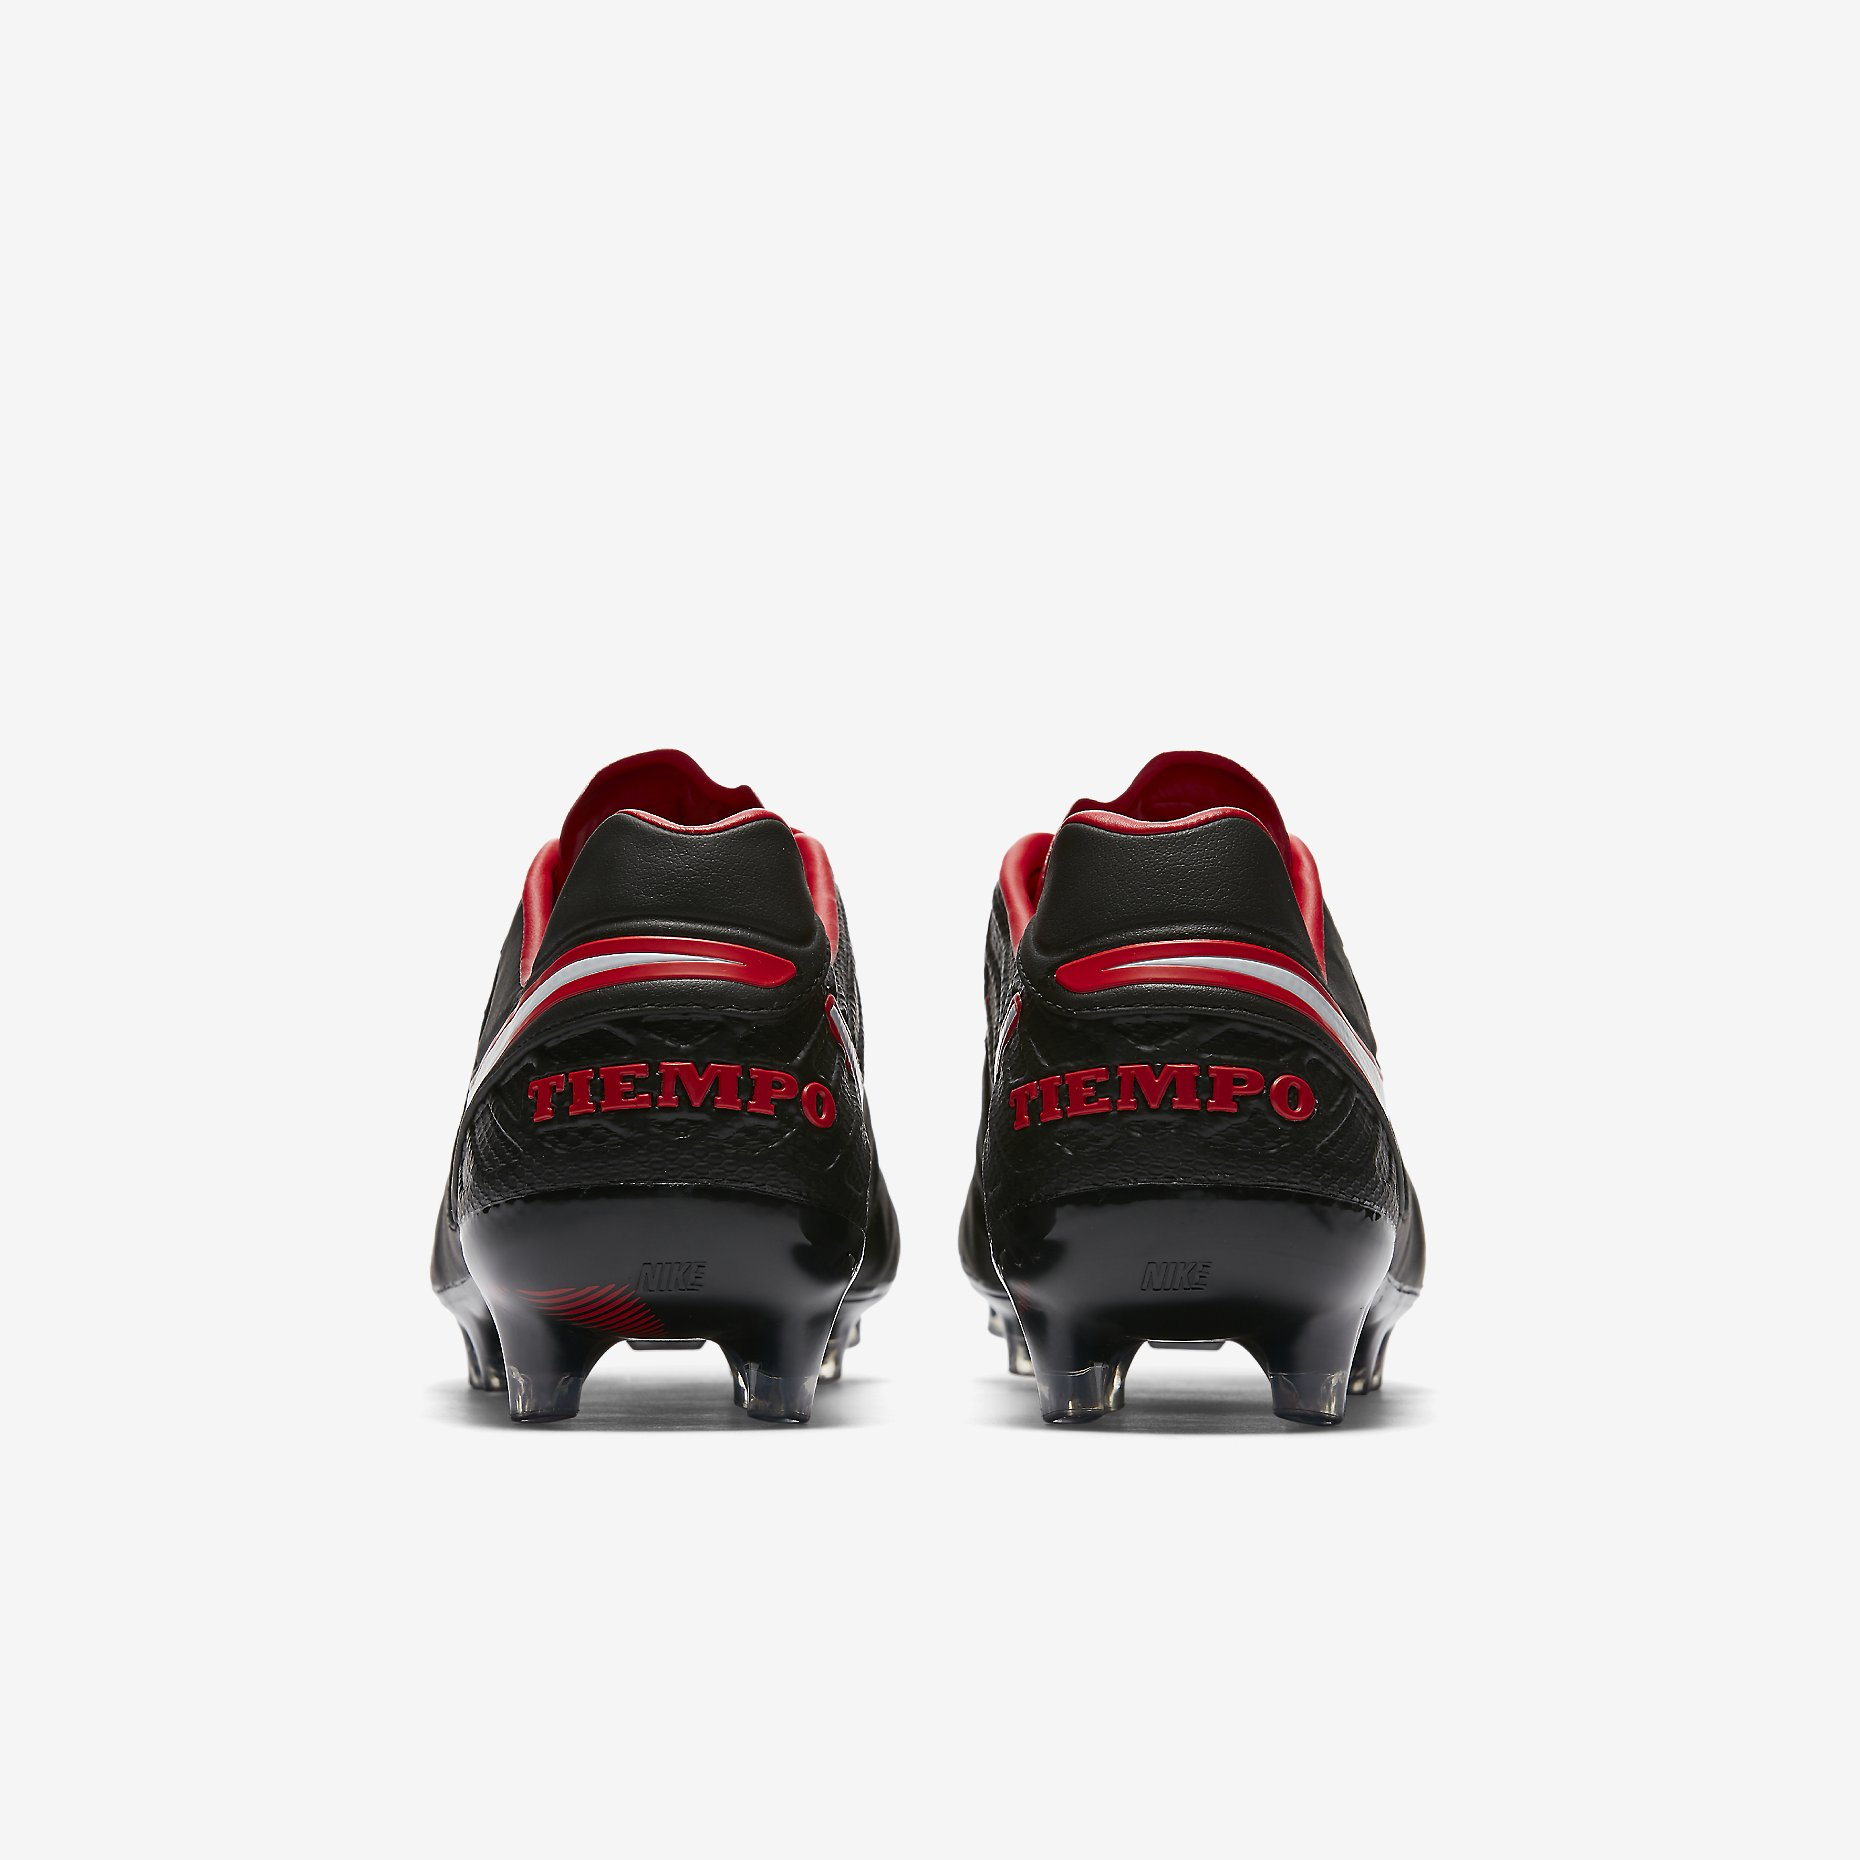 502592a460d7 ... Click to enlarge image  nike tiempo legend vi fg derby days black university red white white f.jpg  ...